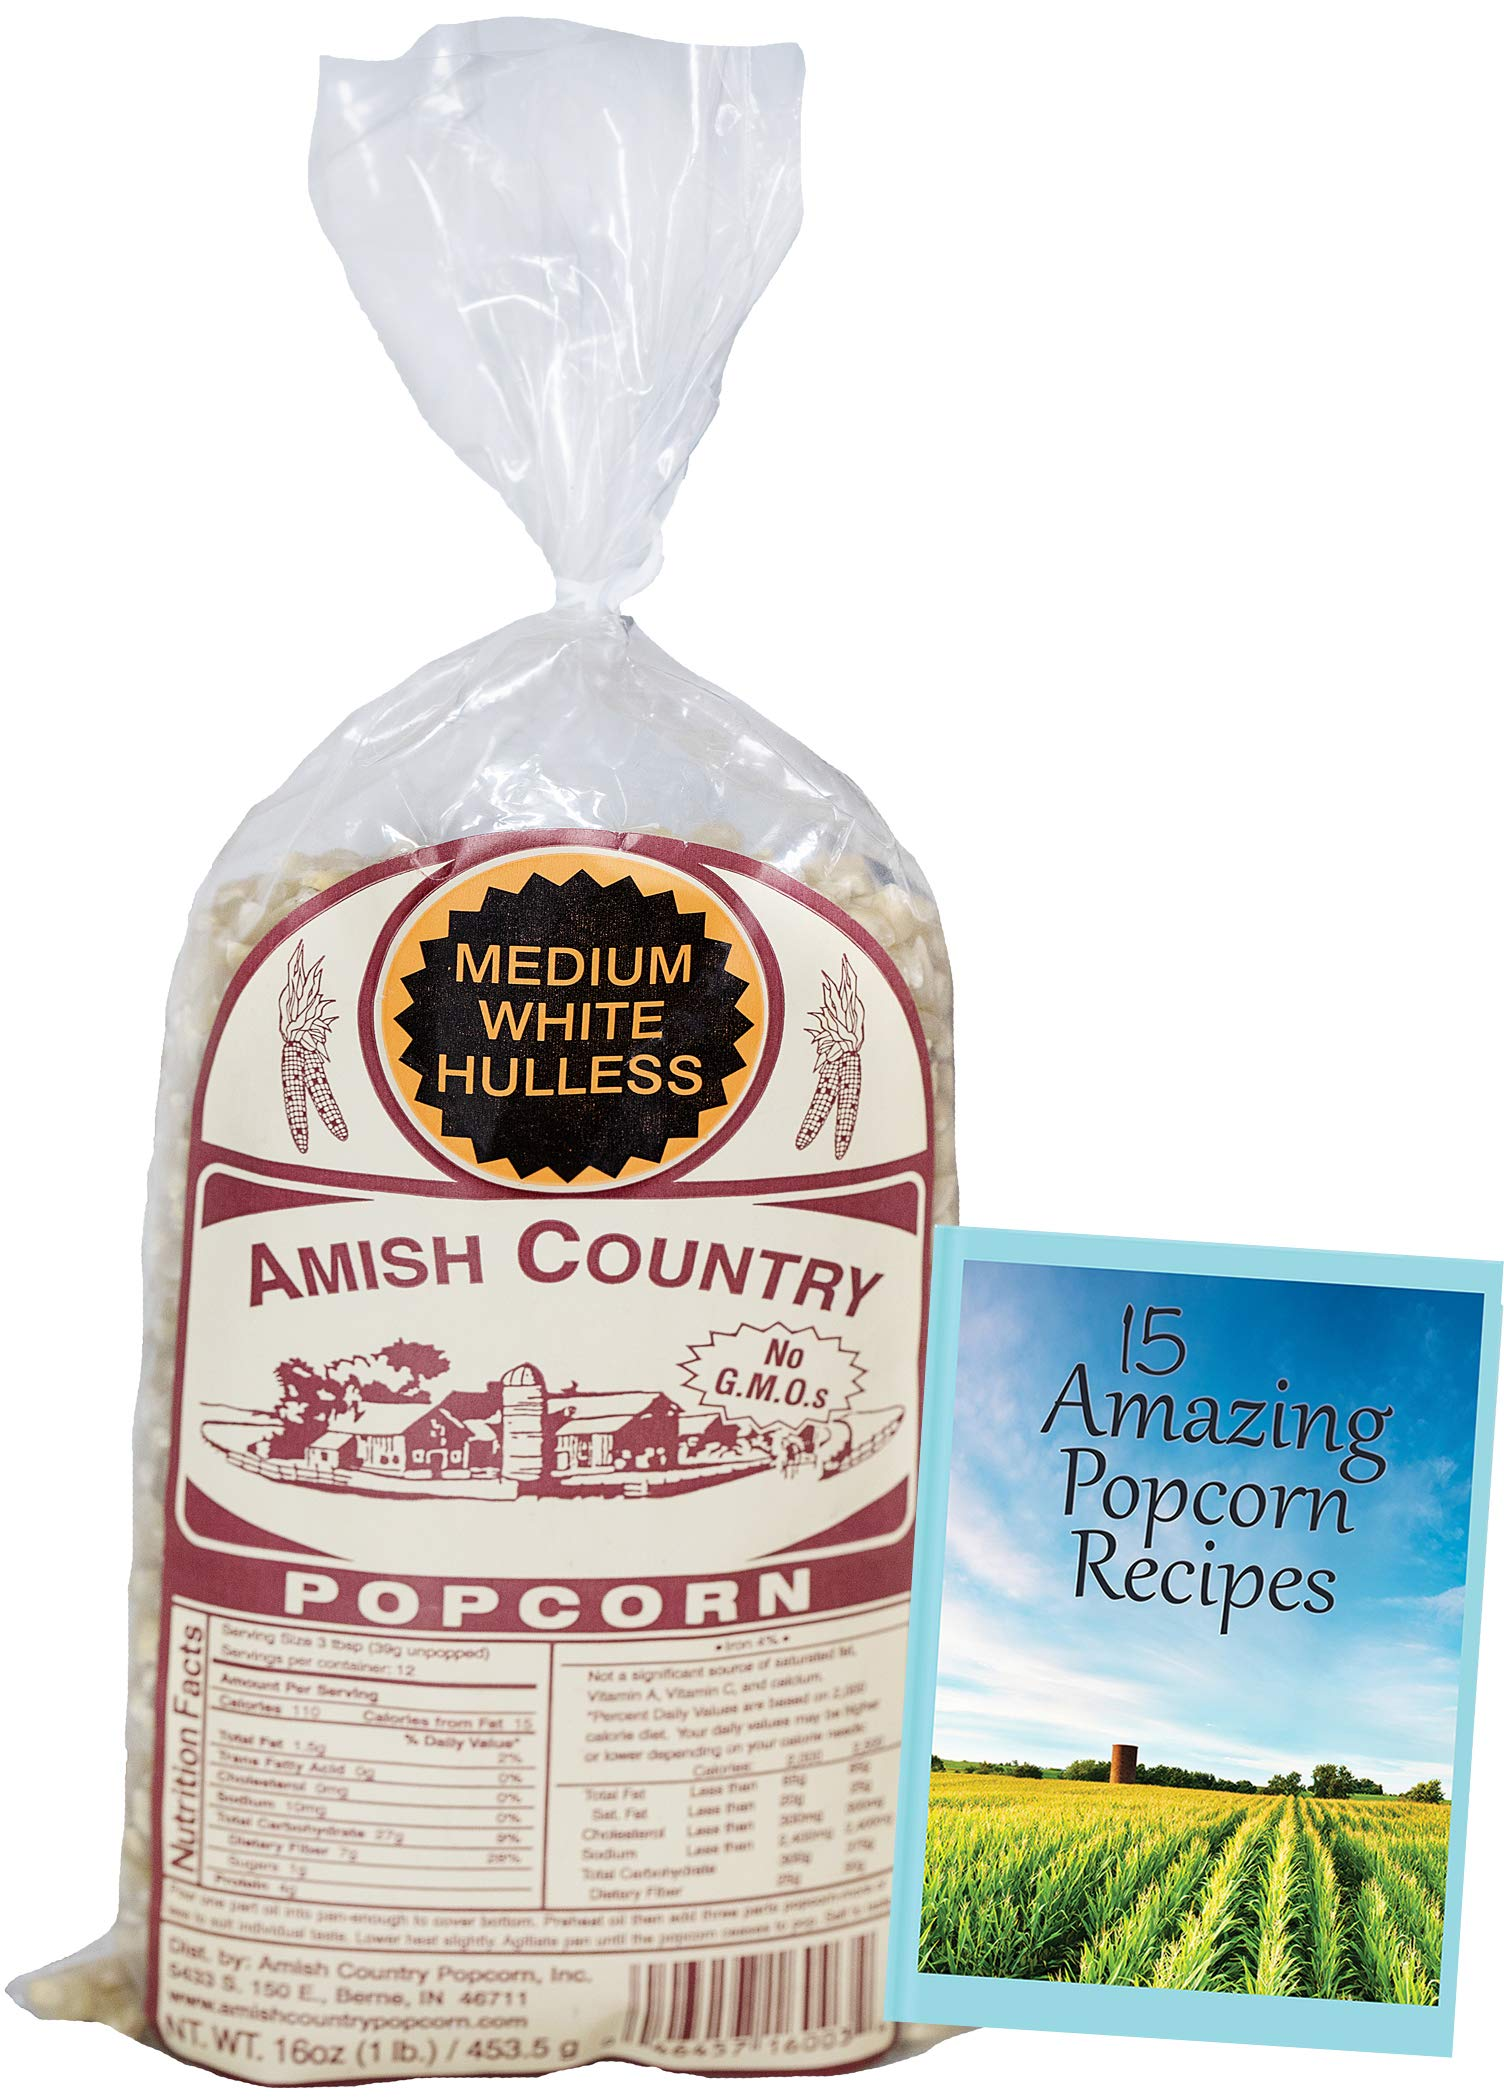 Amish Country Popcorn - Medium White Popcorn (1 Pound Bag) - Old Fashioned, Non GMO, Gluten Free, Microwaveable, Stovetop and Air Popper Friendly - Recipe Guide by Amish Country Popcorn (Image #2)